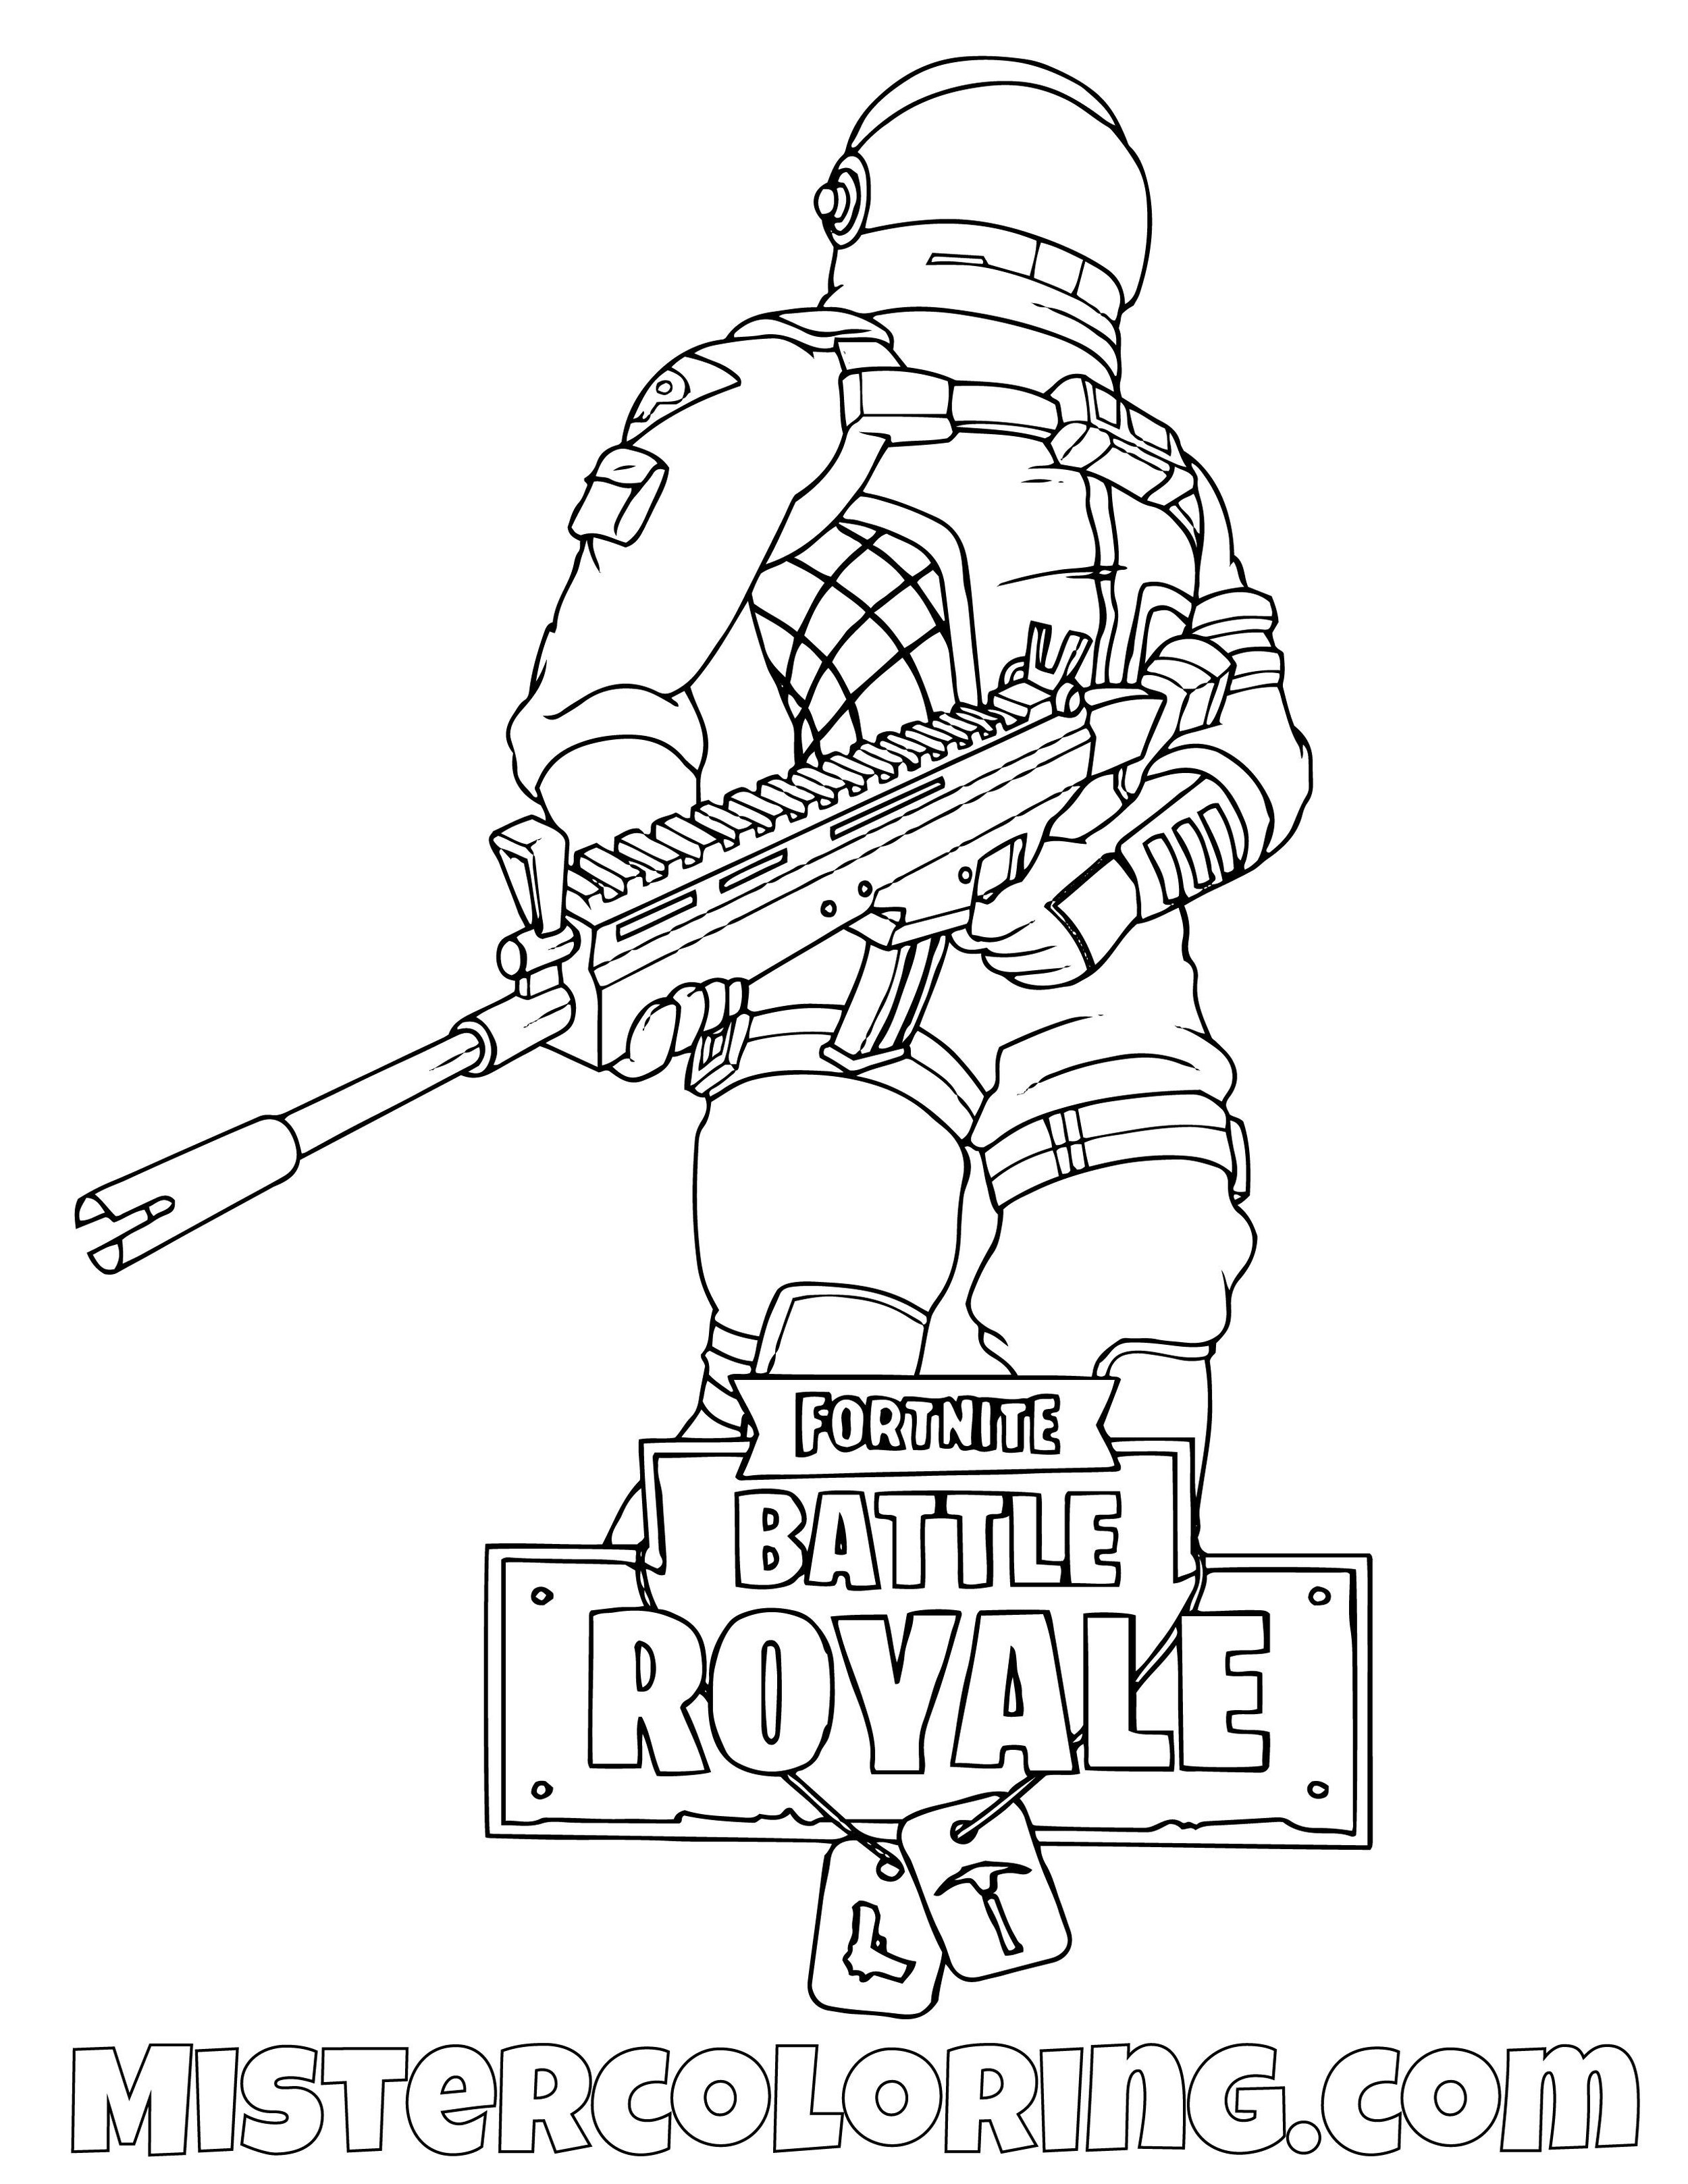 Dark Voyager With Scar Fortnite Coloring Page